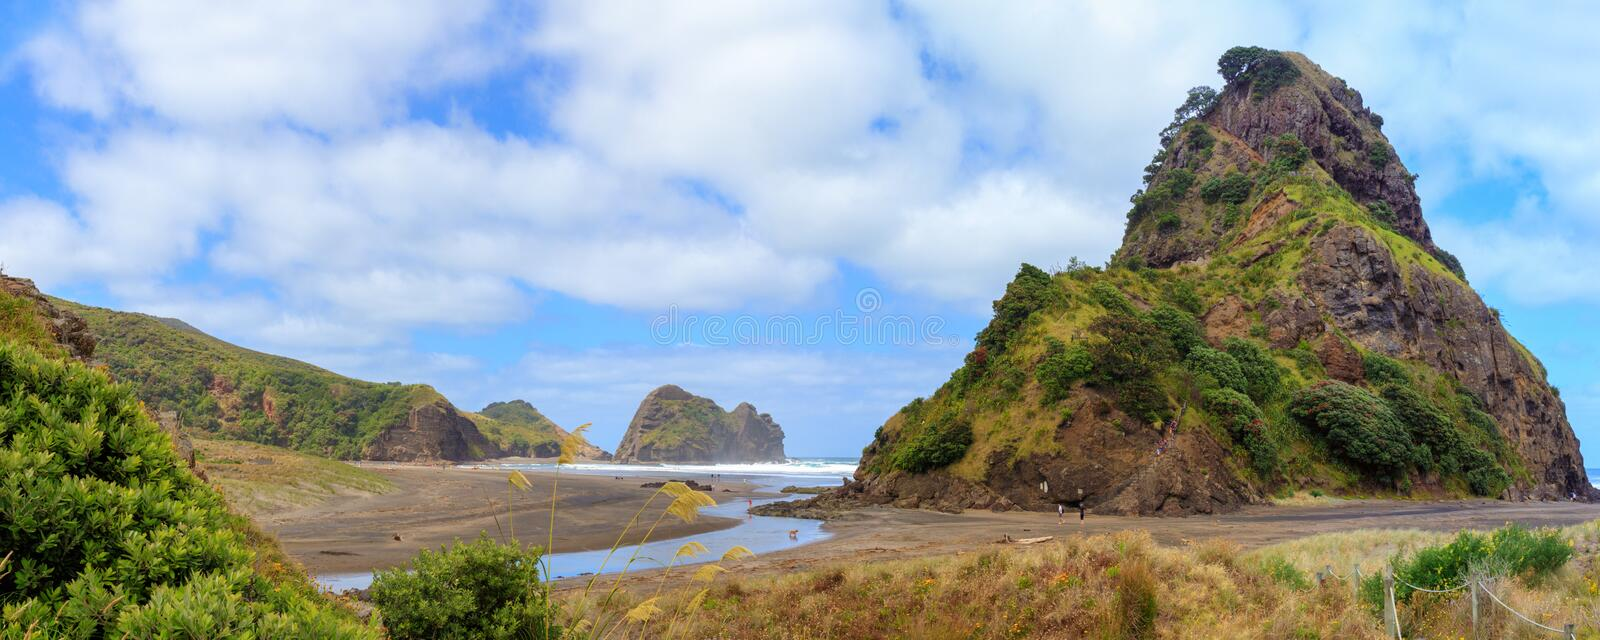 Piha Beach and Lion Rock, Auckland Region, New Zealand.  royalty free stock photography